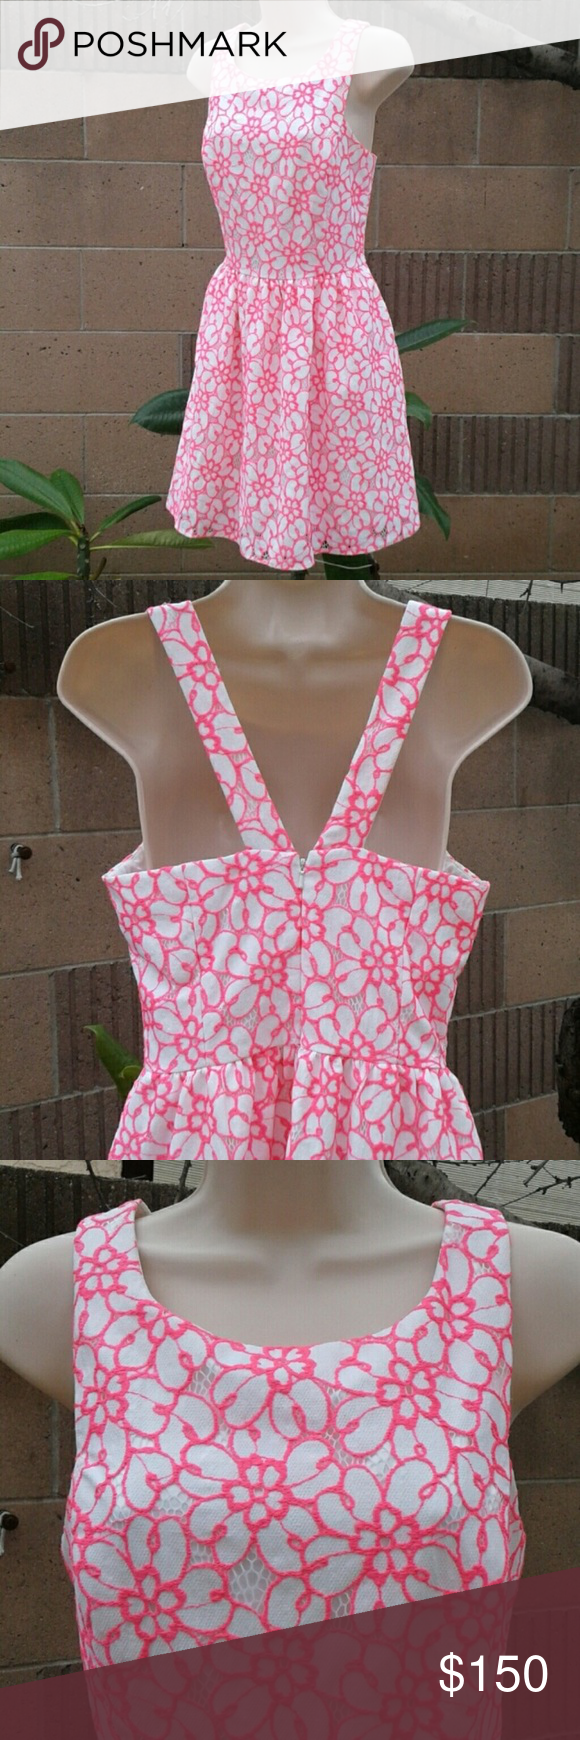 Lilly Pulitzer Fiesta Pink and white lace dress NWT | Pinterest